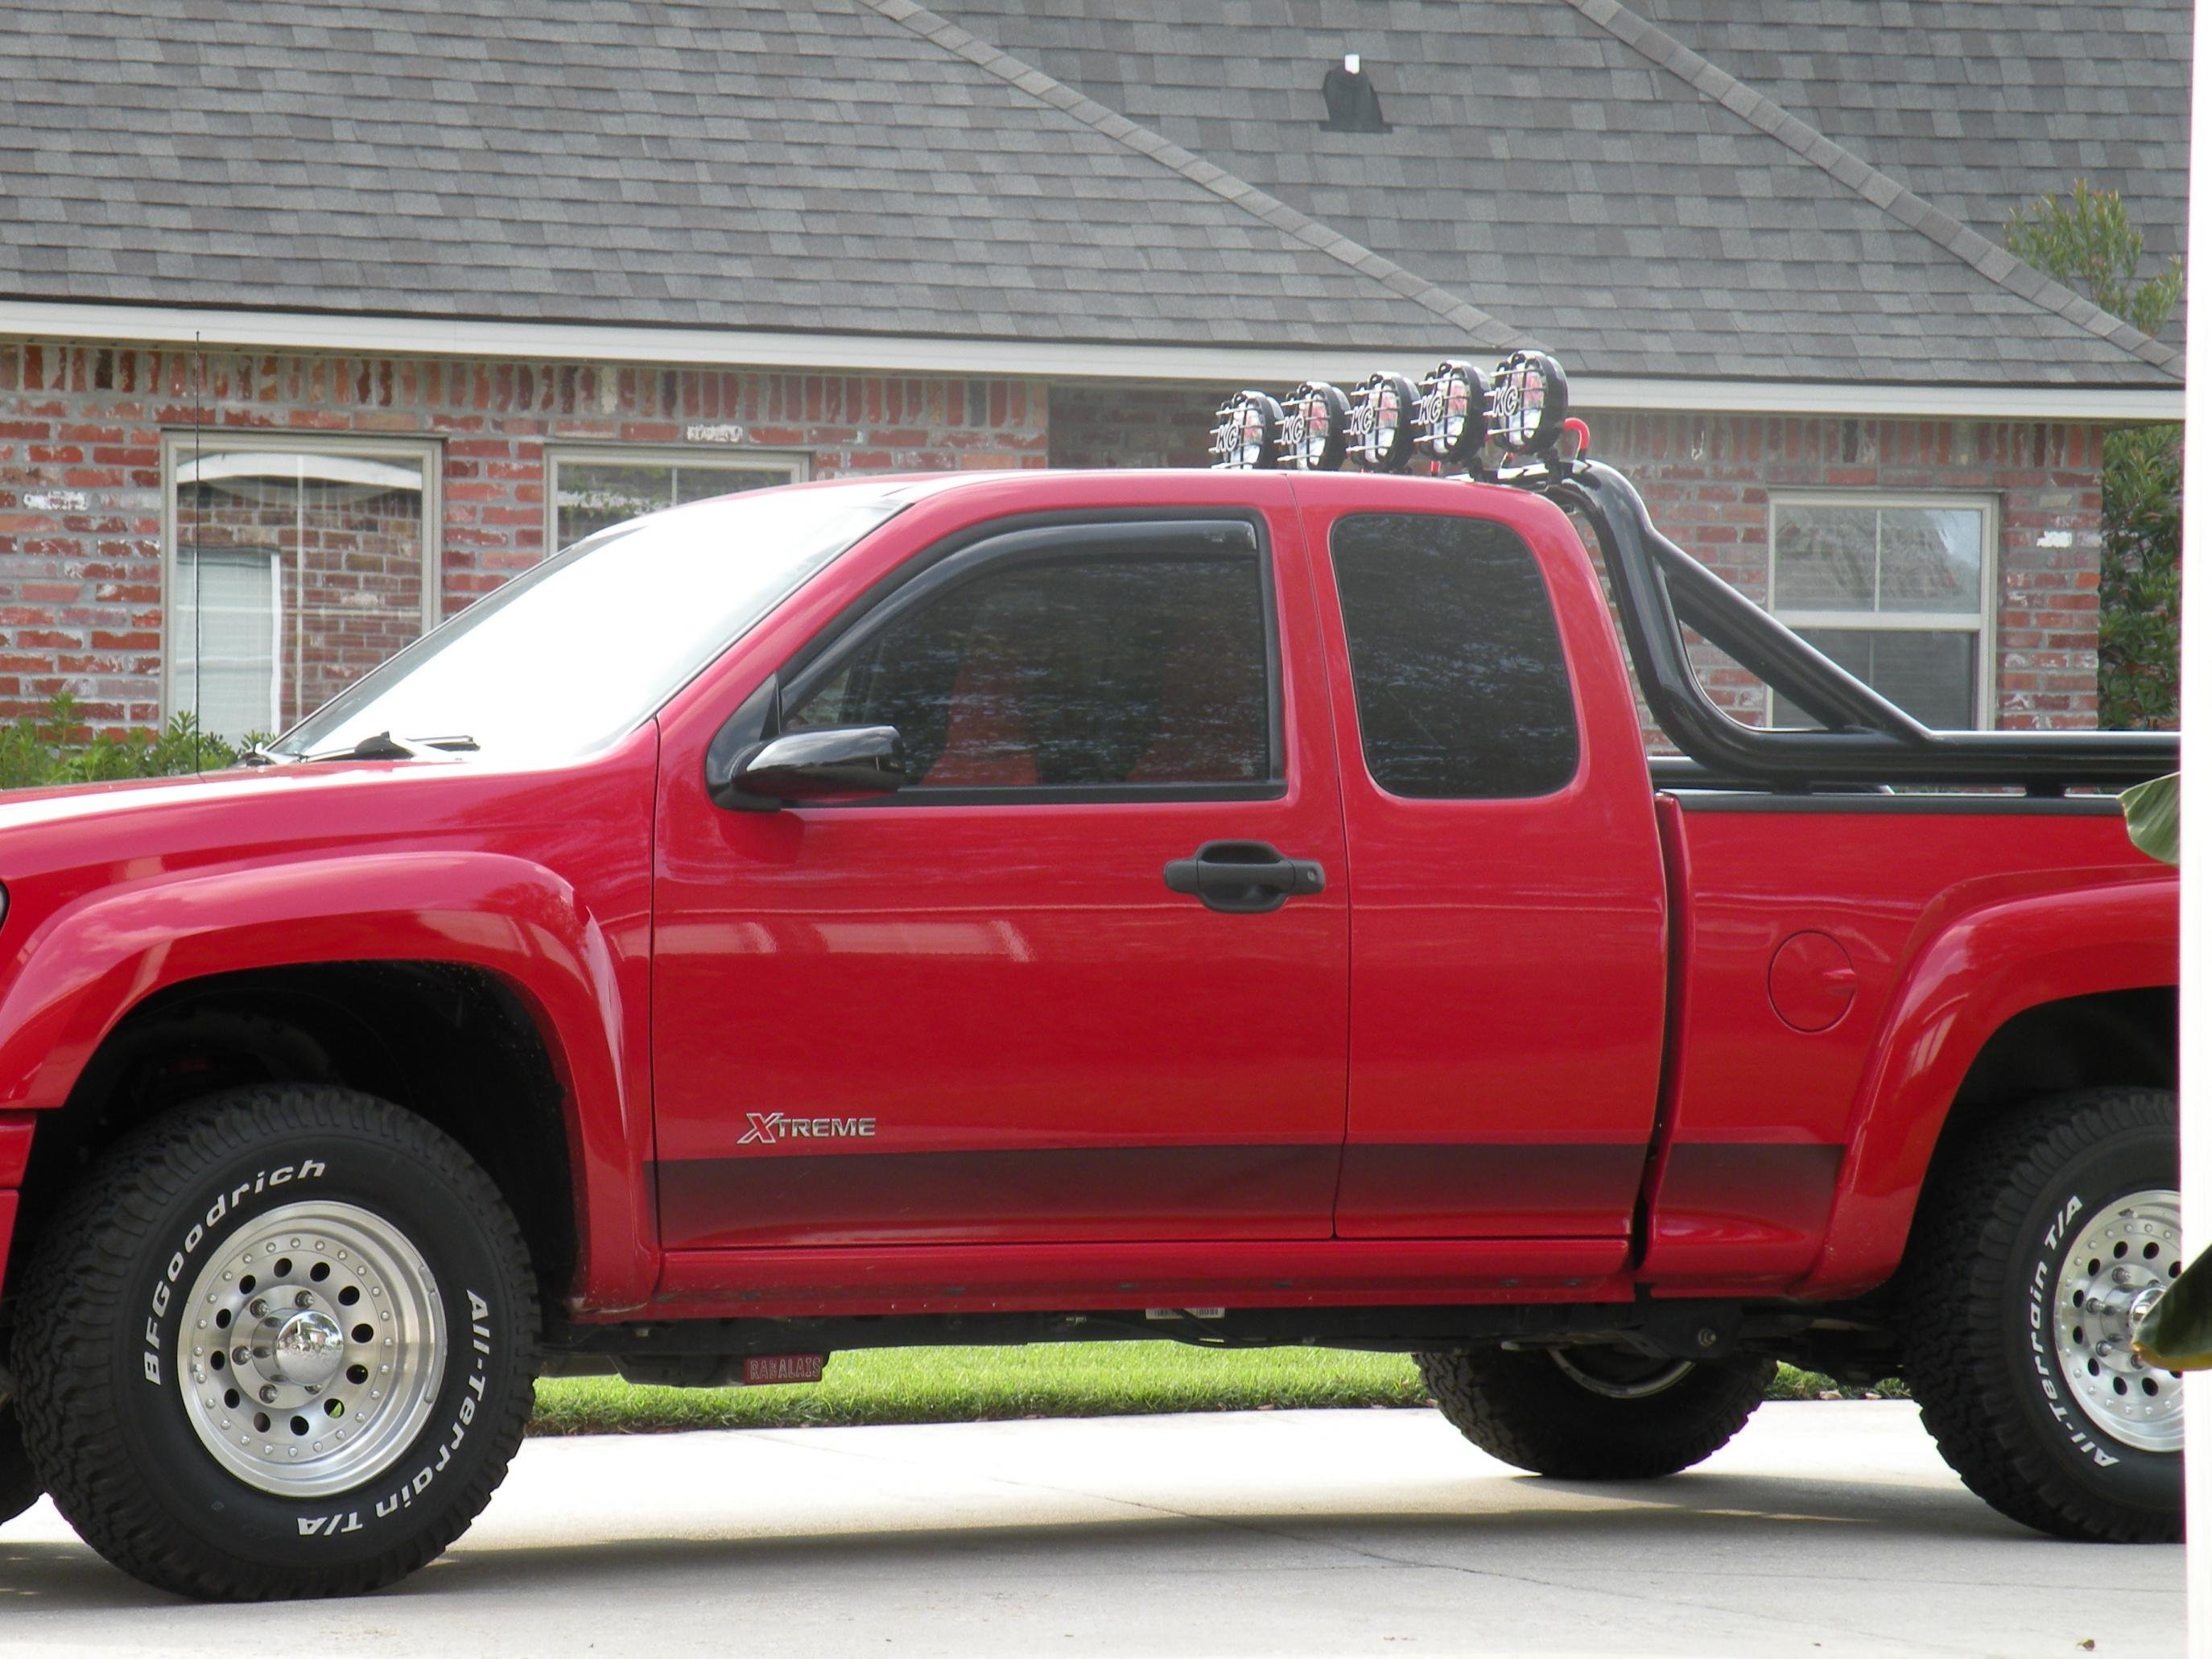 chevy m i colorado love r chevrolet first comments my in weekend this nmtxagy bought